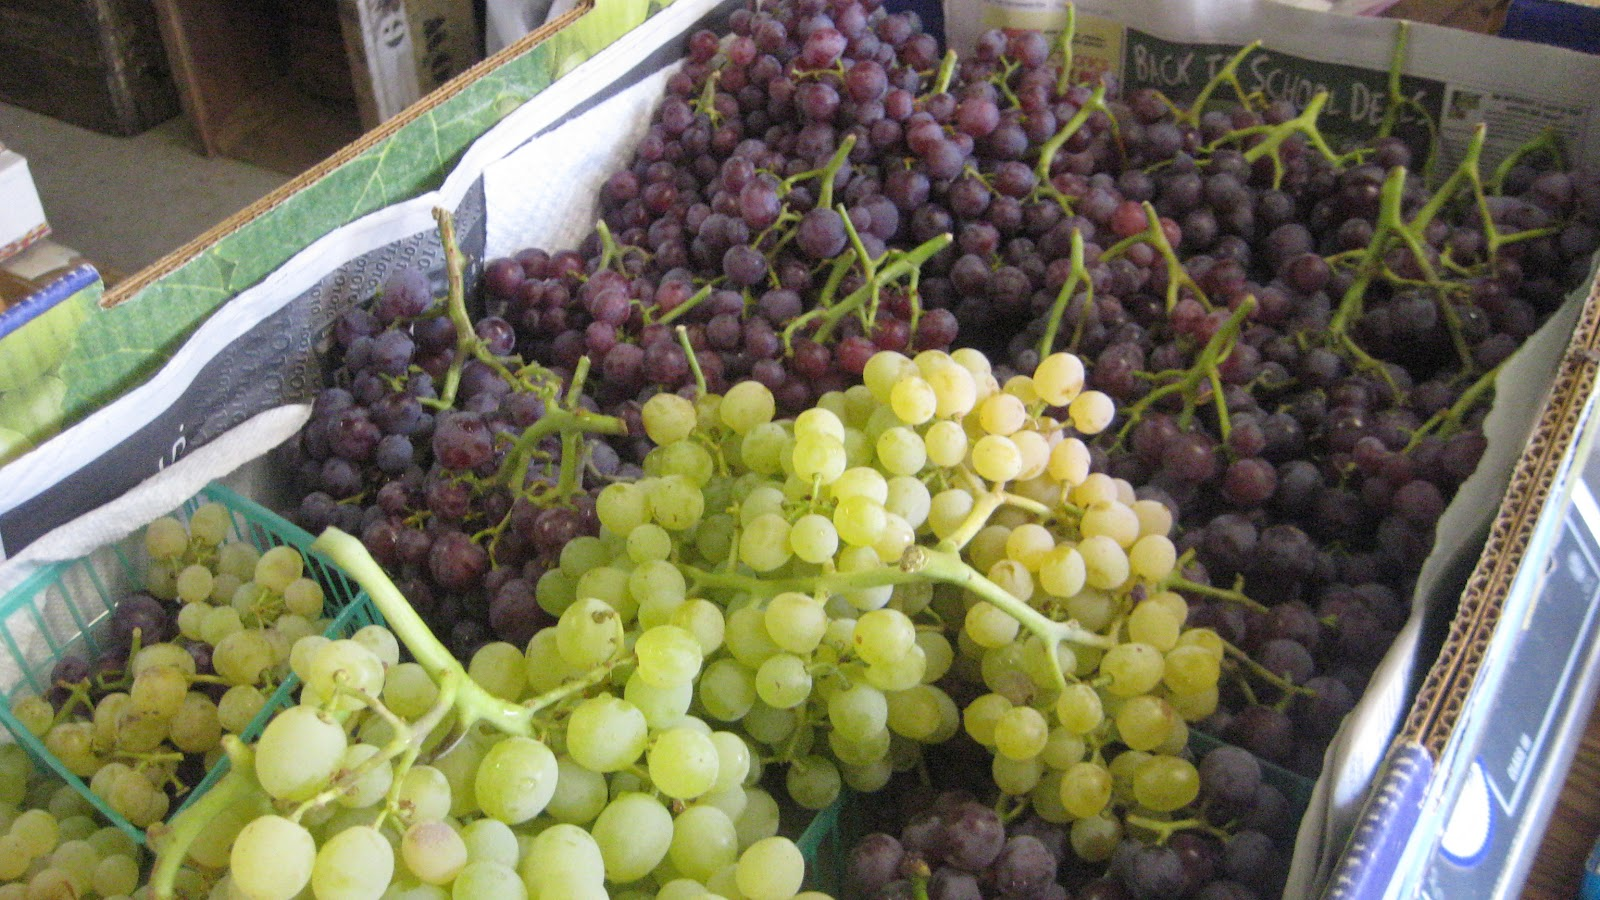 Otow Orchard Fruit Stand: Grapes